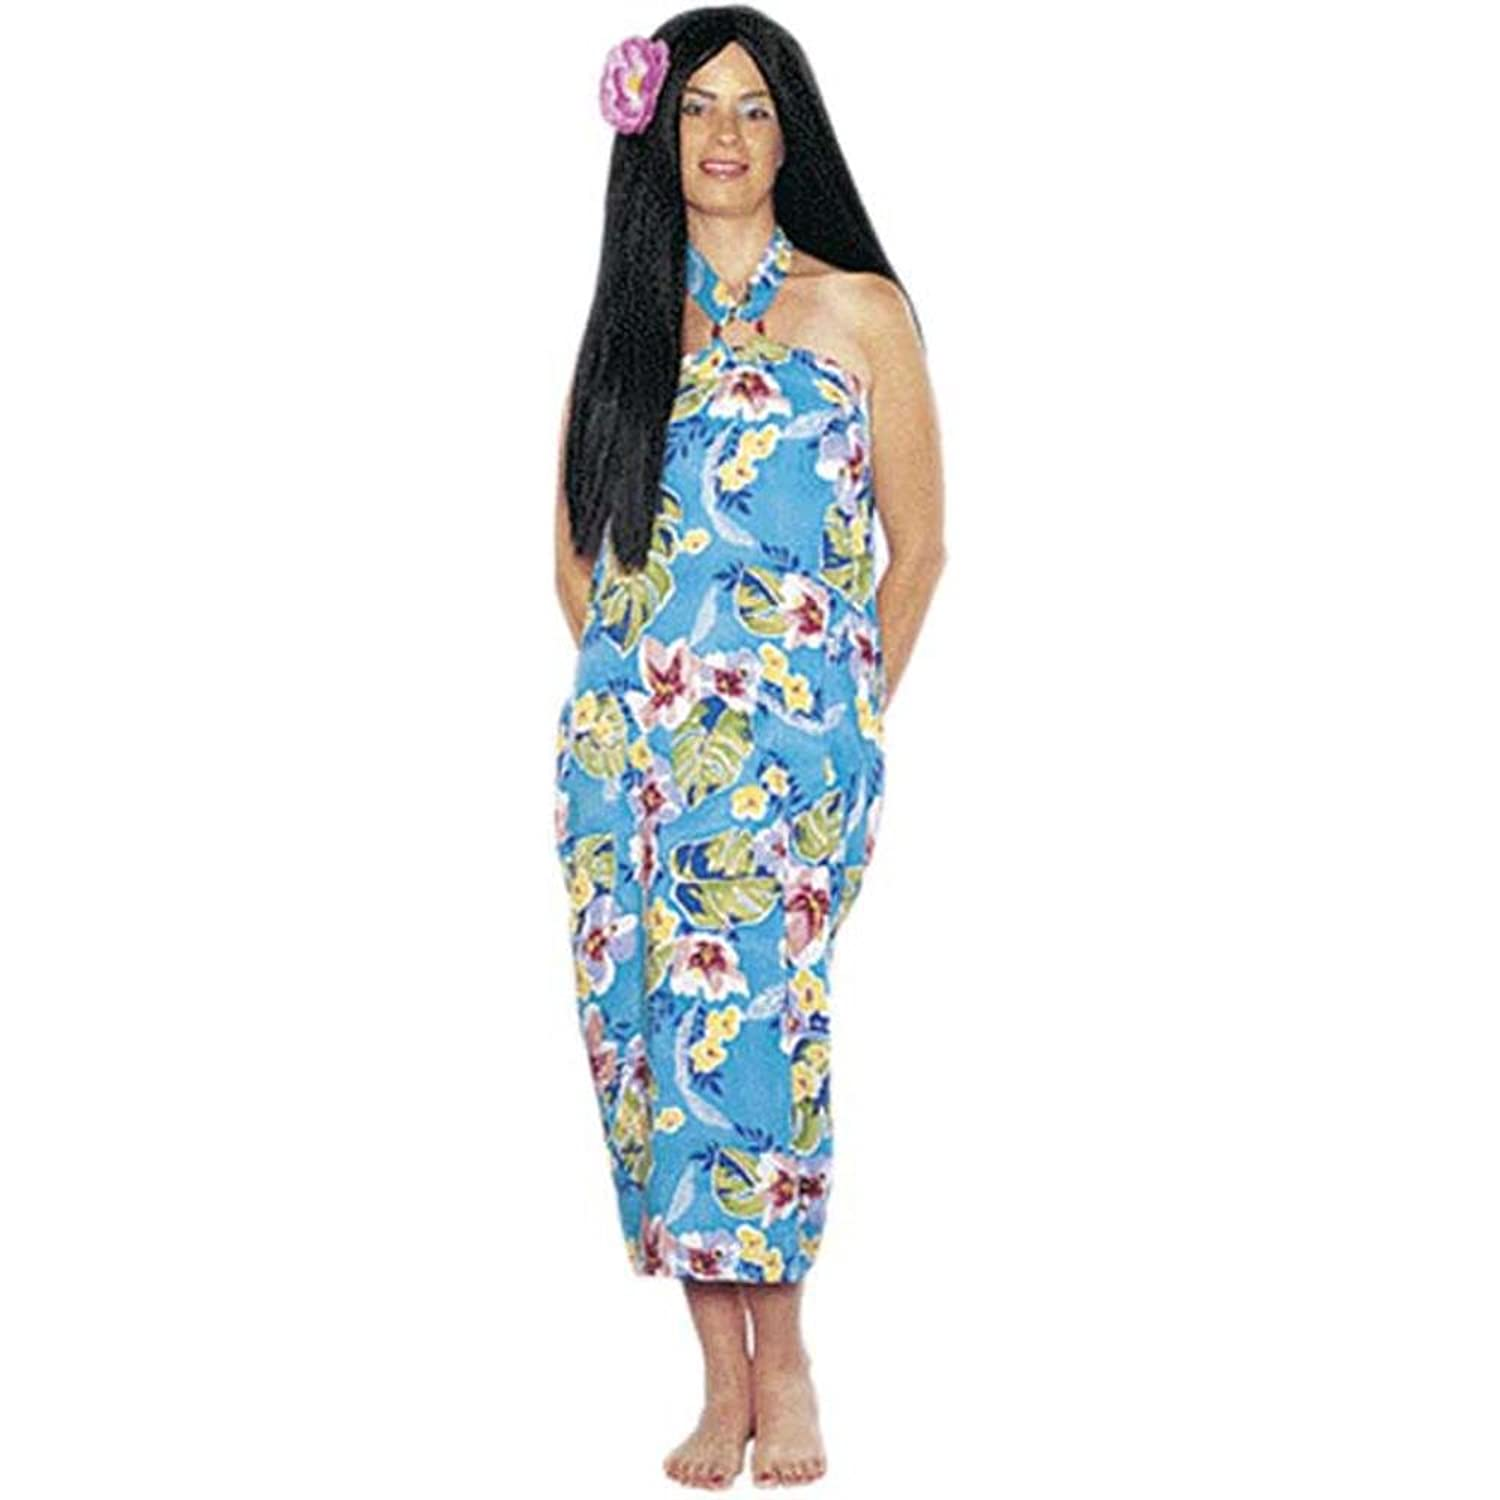 Luau Dresses For Women